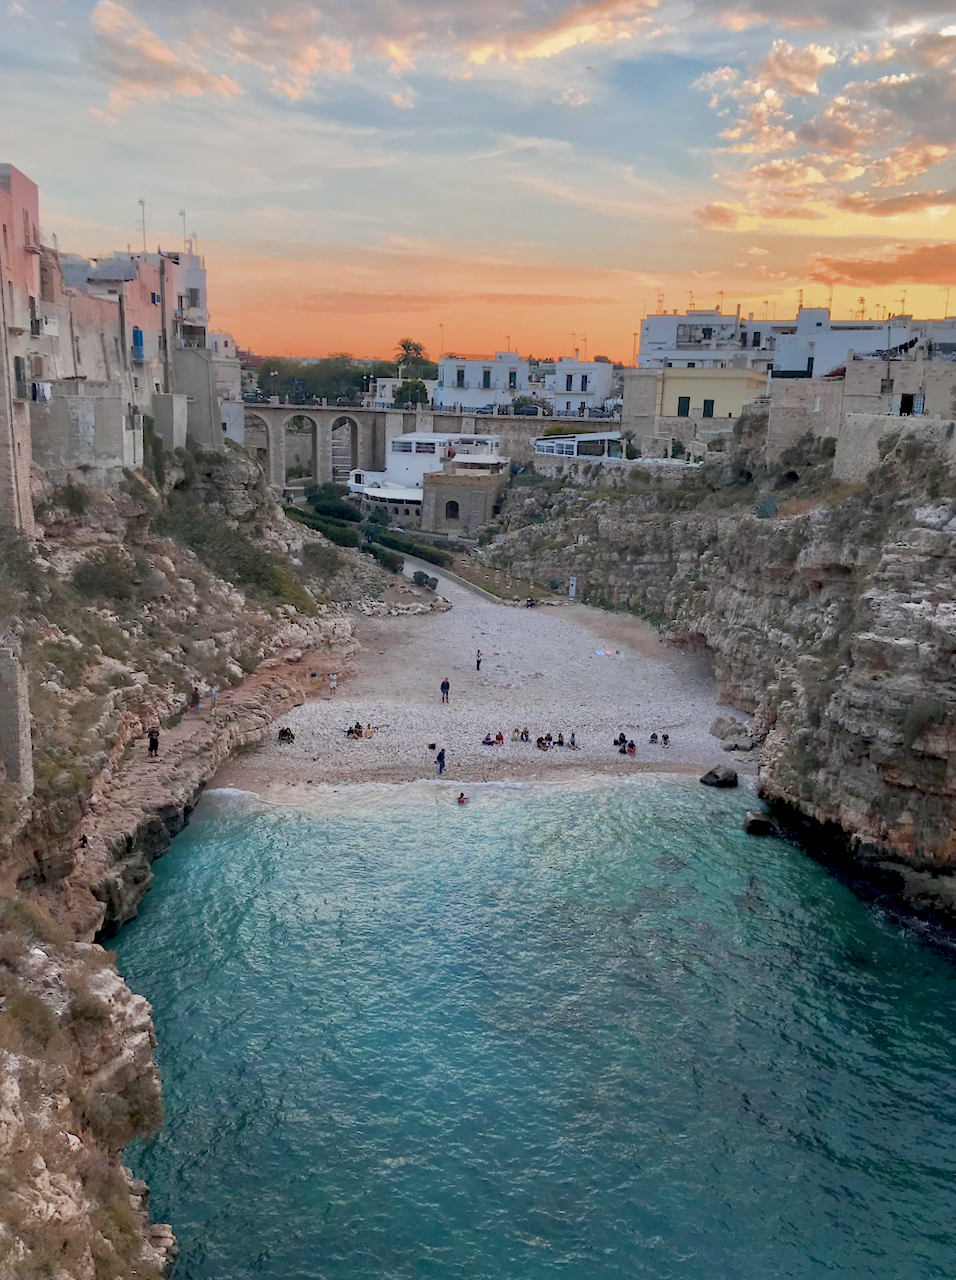 View of the cove, beach and ocean at Polignano a Mare, Pulia, Italy